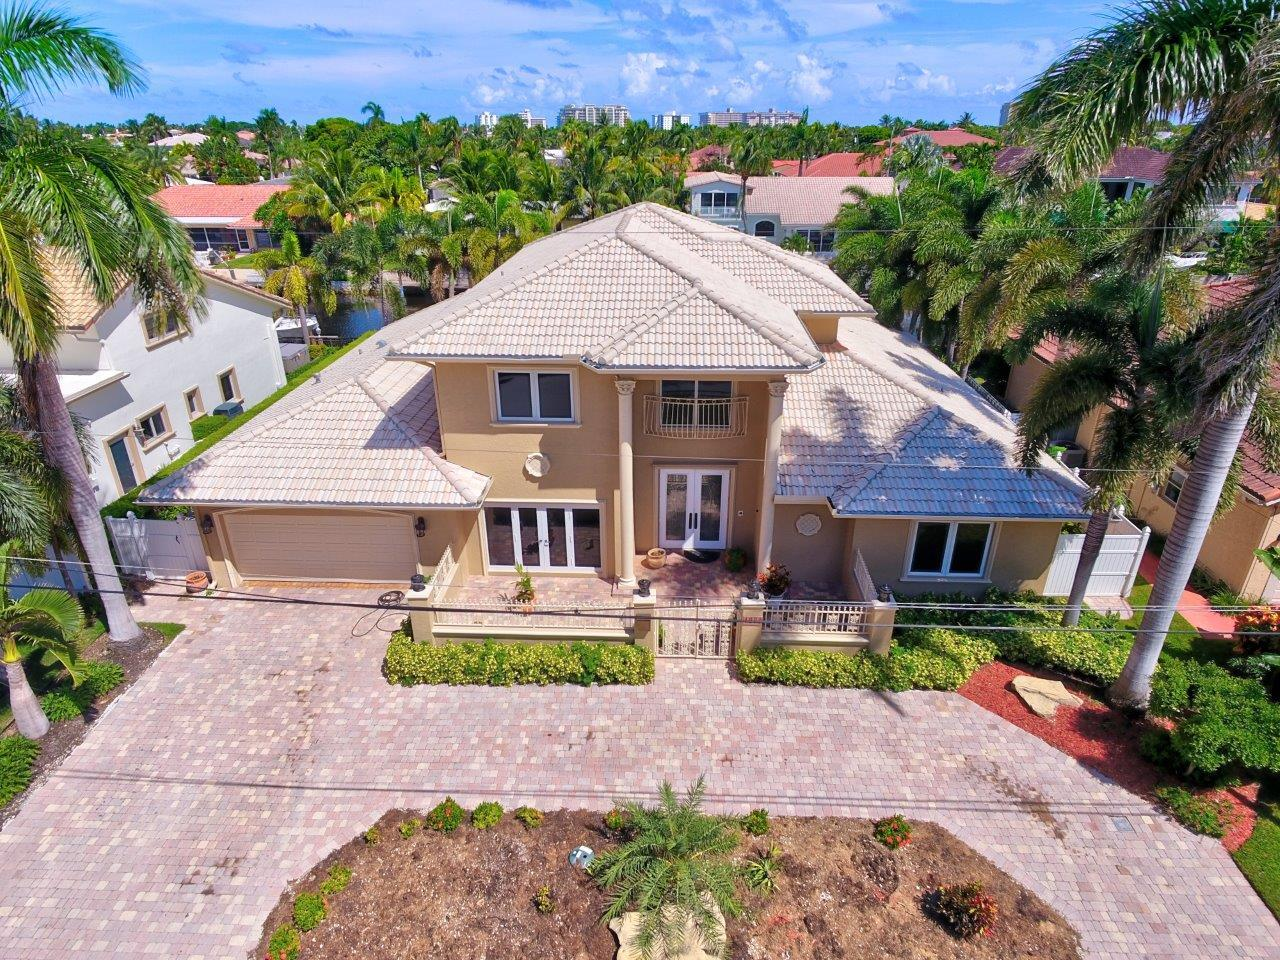 4280 NE 23rd Terrace - Lighthouse Point, Florida